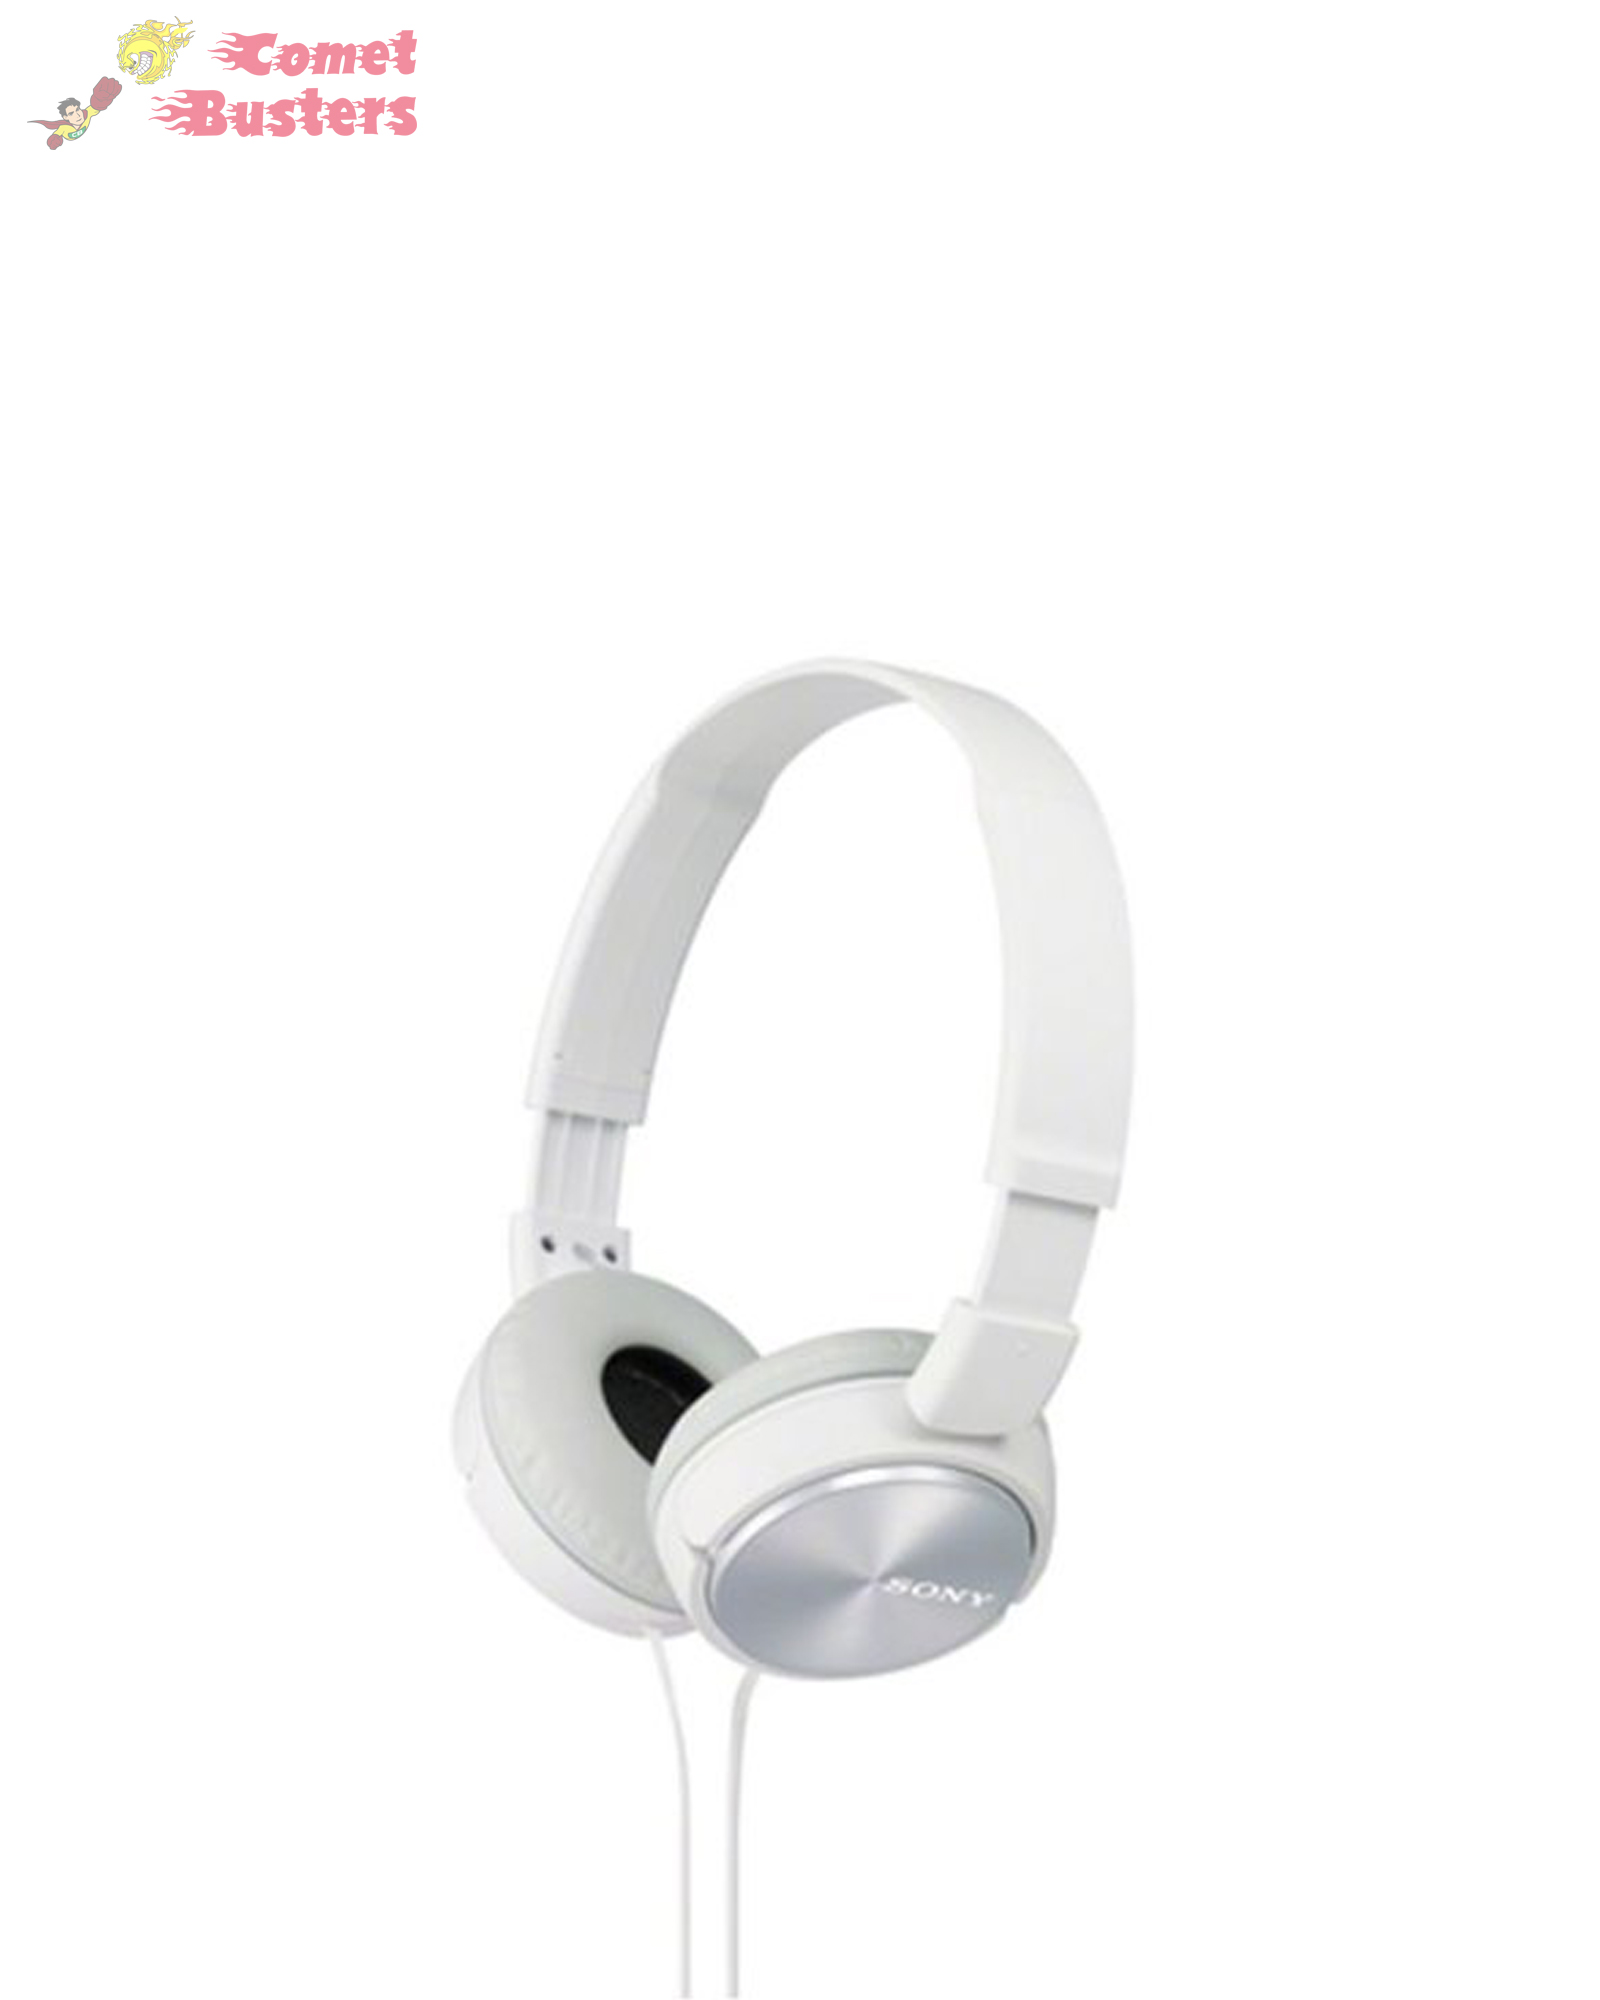 Sony MDR-ZX310 | White